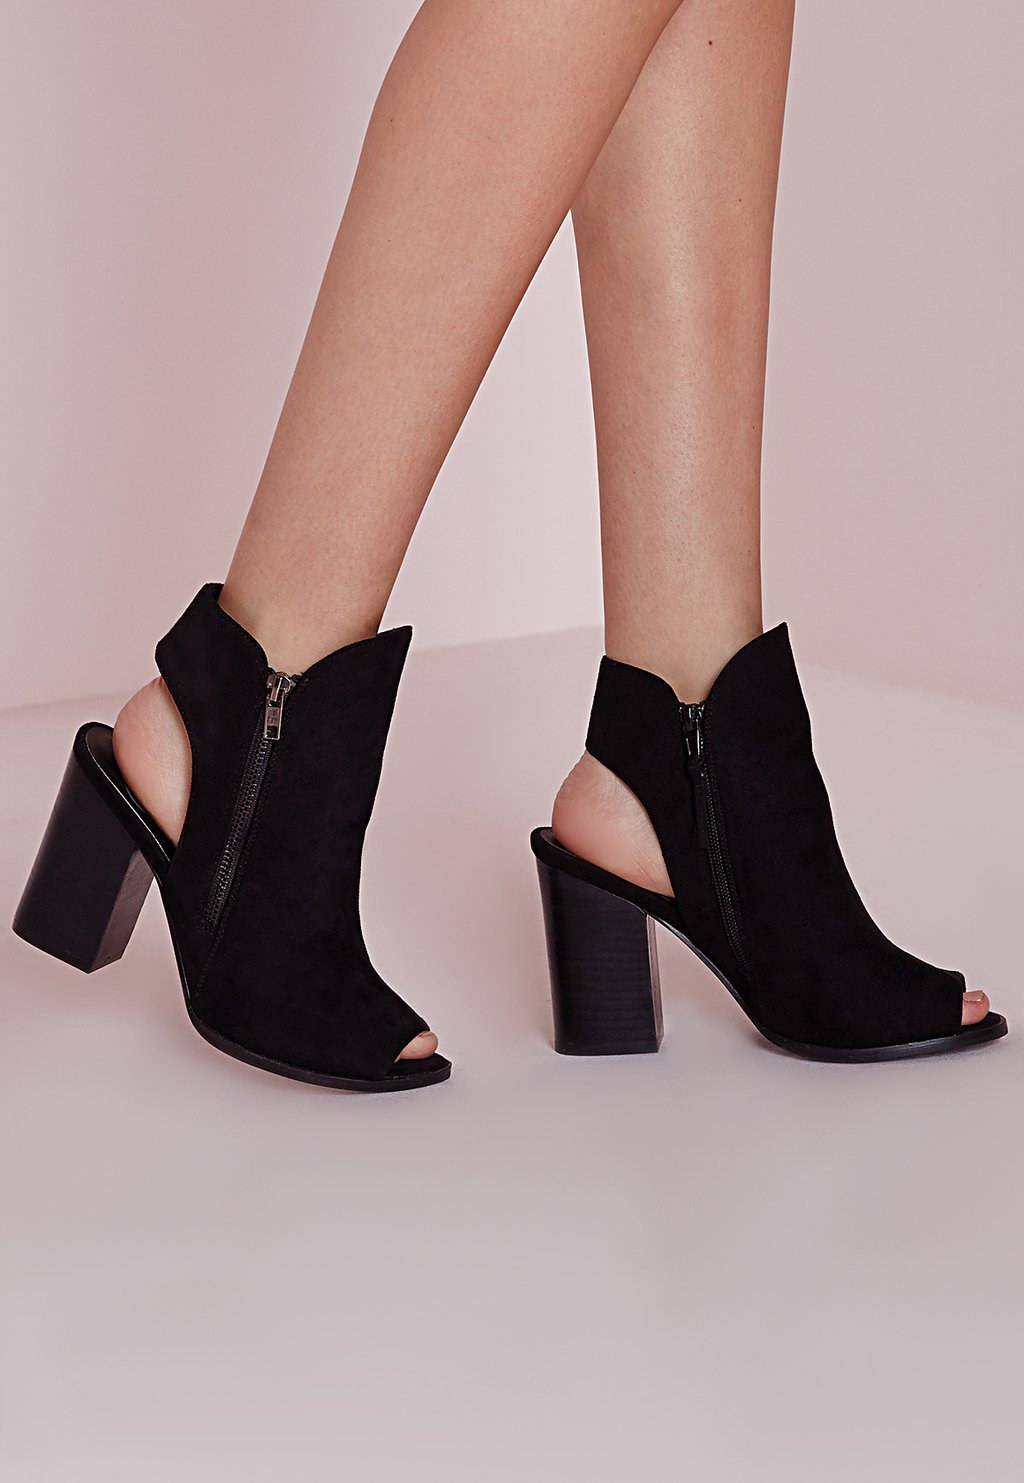 Peep Toe Cut Out Ankle Boots Black, Black - predominant colour: black; occasions: casual, creative work; heel height: high; heel: block; toe: open toe/peeptoe; boot length: ankle boot; style: standard; finish: plain; pattern: plain; material: faux suede; season: s/s 2016